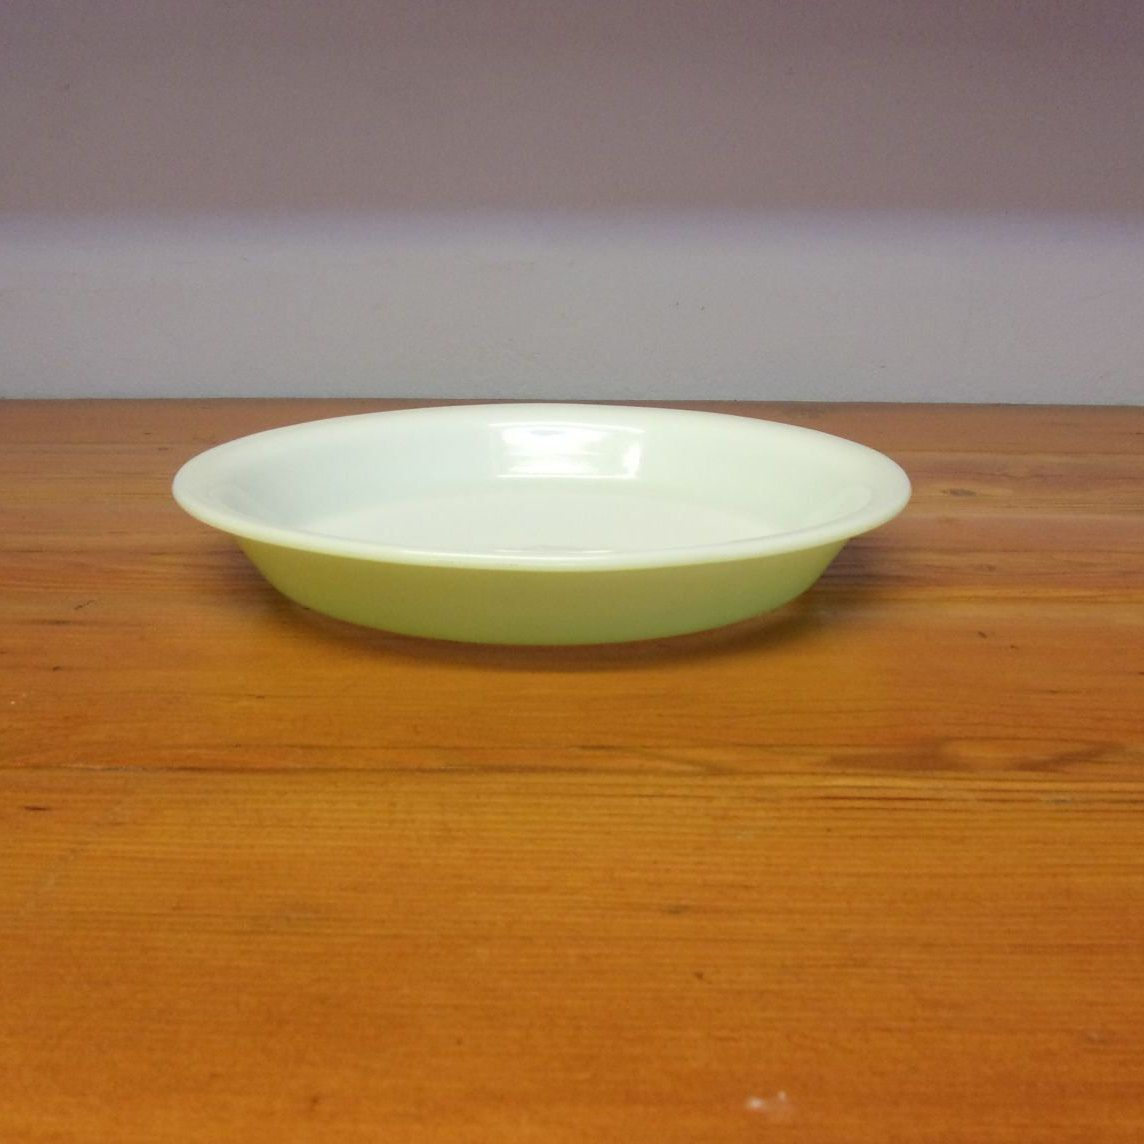 Vintage Pyrex lime green 9 inch pie plate & Vintage Pyrex lime green 9 inch pie plate | Vintage pyrex Pie plate ...